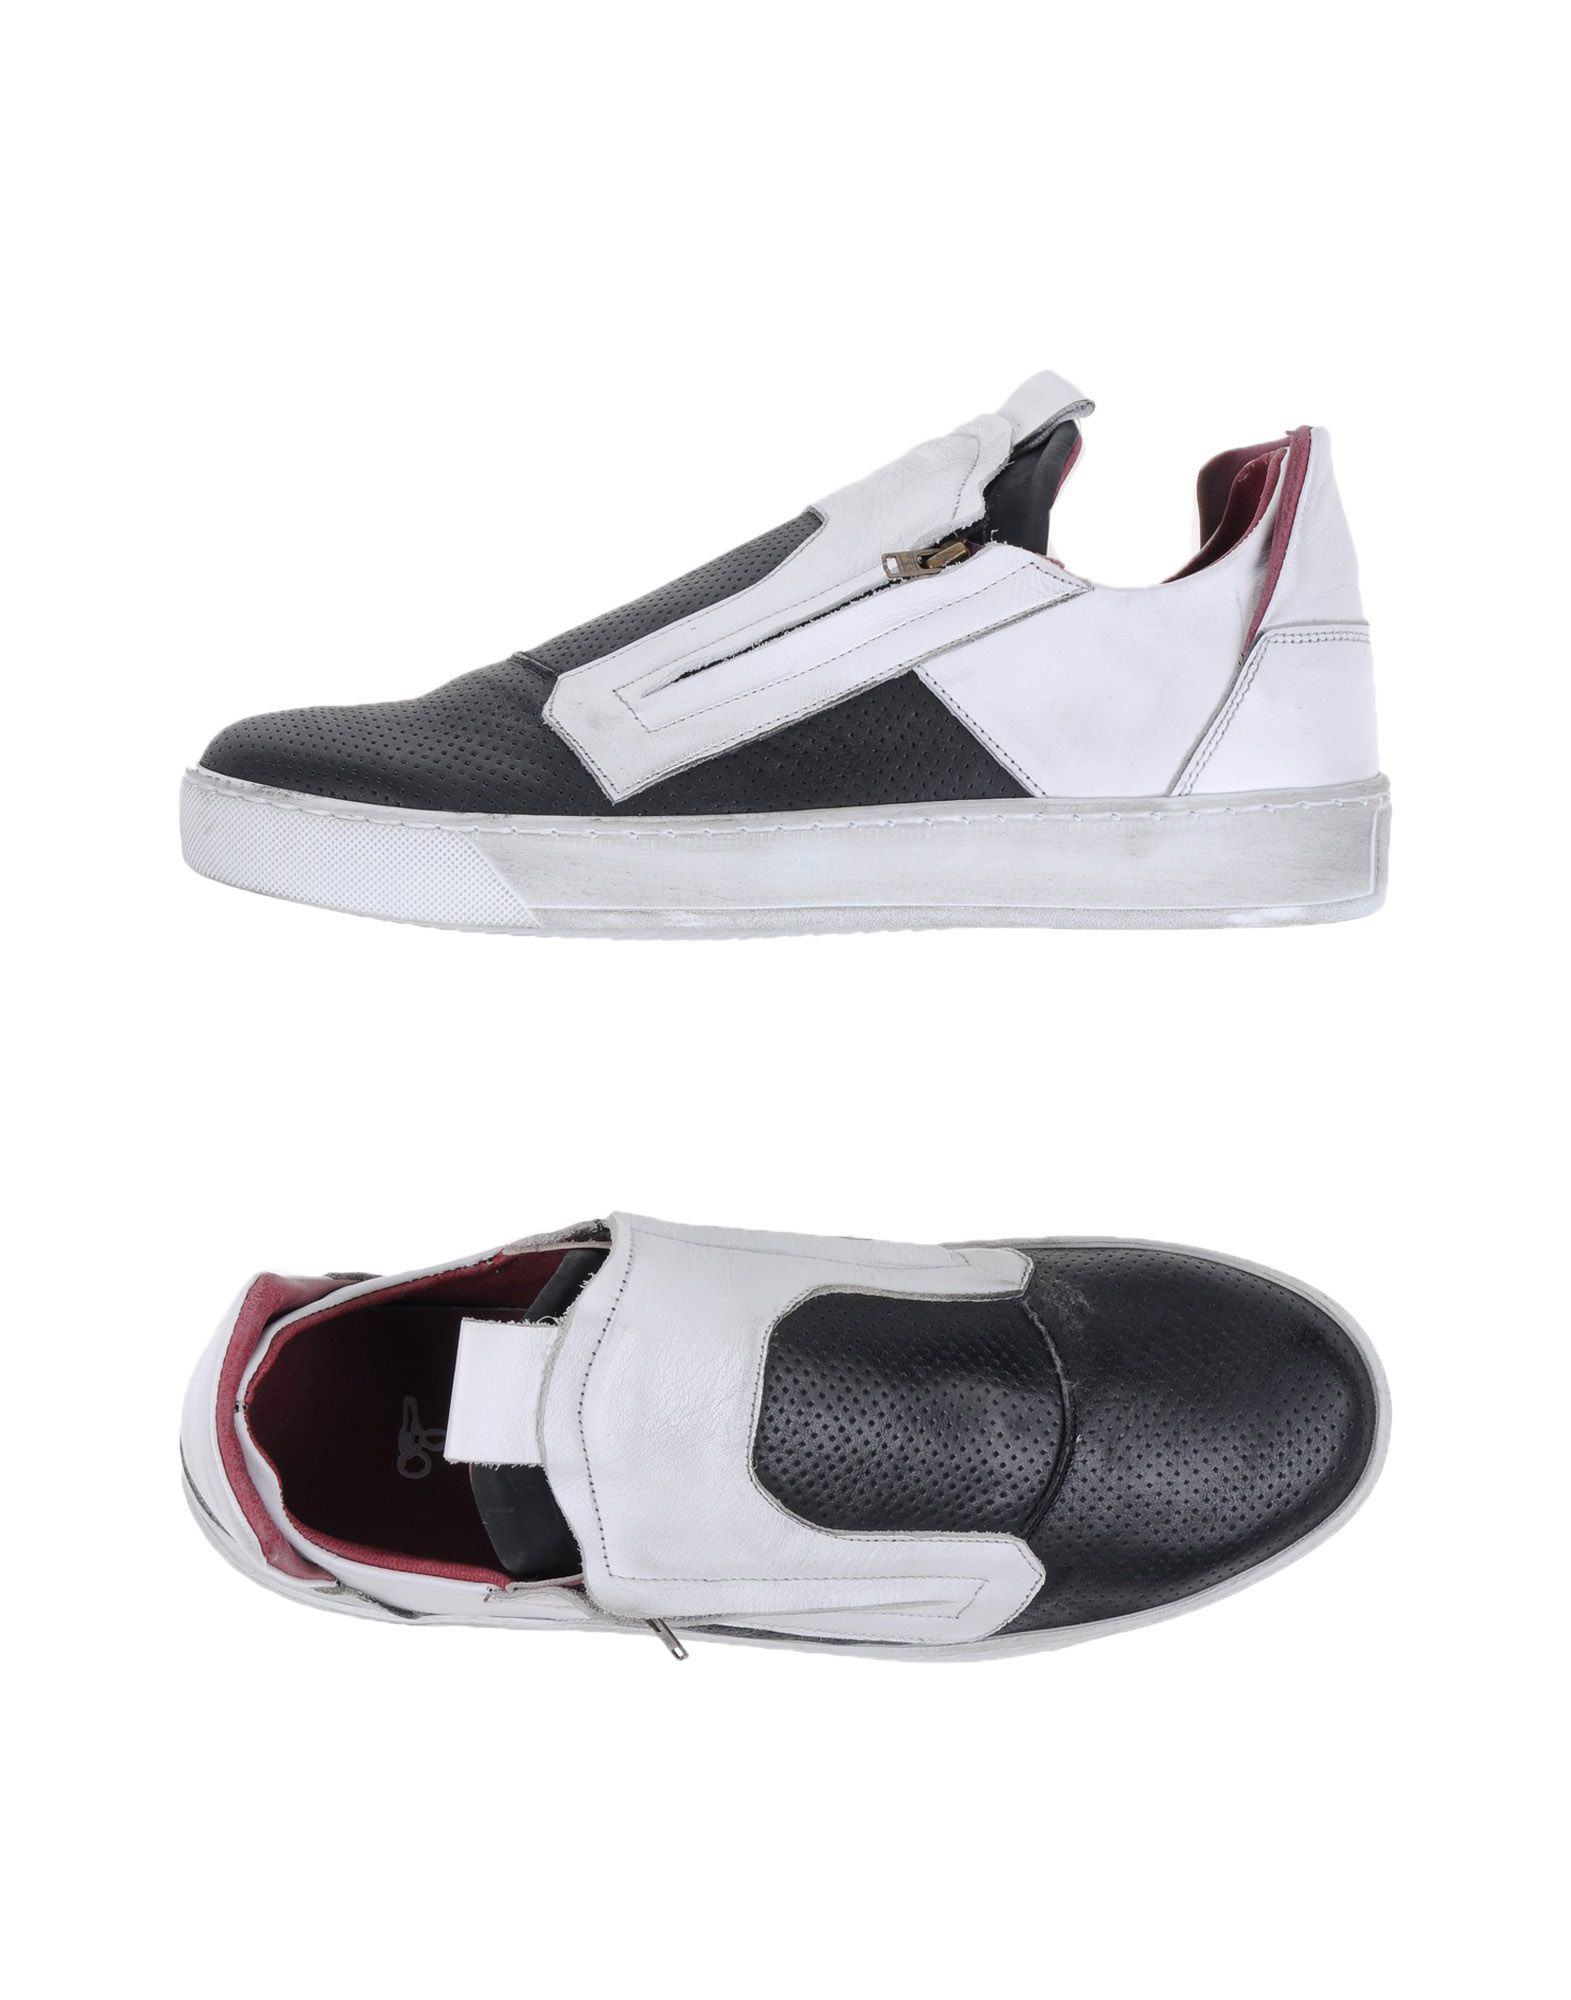 Sneakers Marcel Martillo Homme - Sneakers Marcel Martillo sur